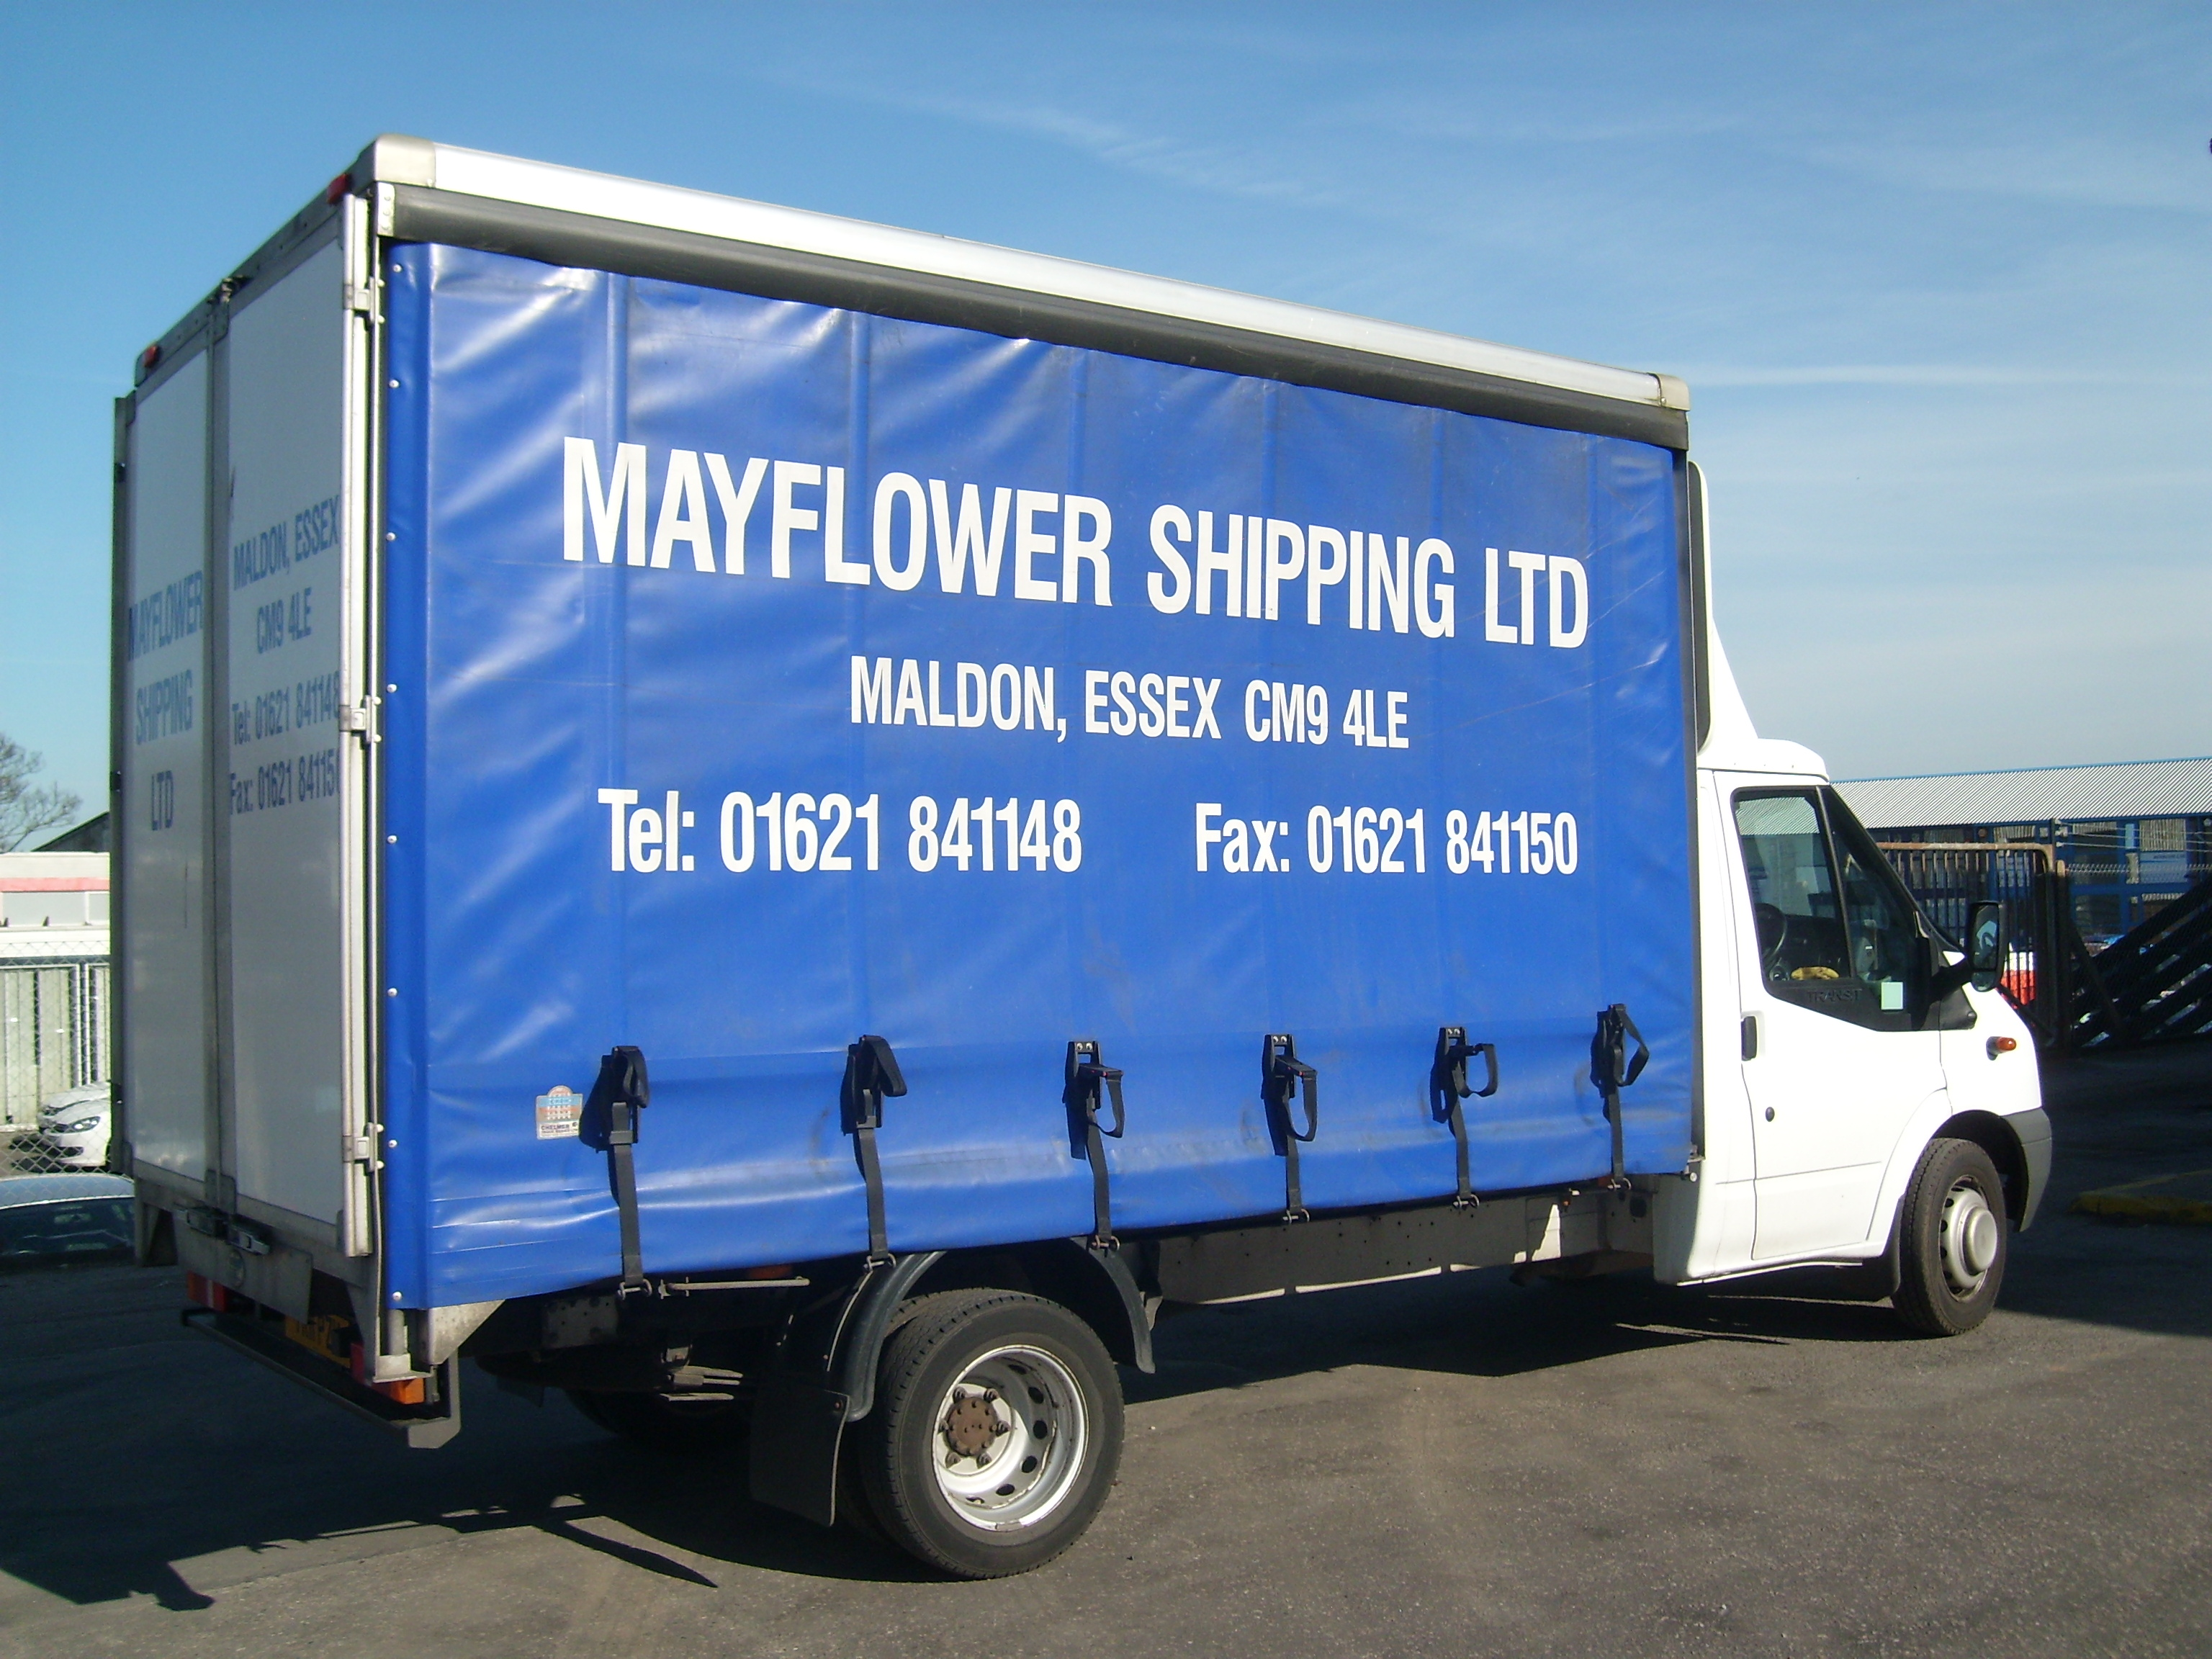 Superb Mayflower Car Shipping #10: Mayflower Shipping Ltd. International Forwarding Agents